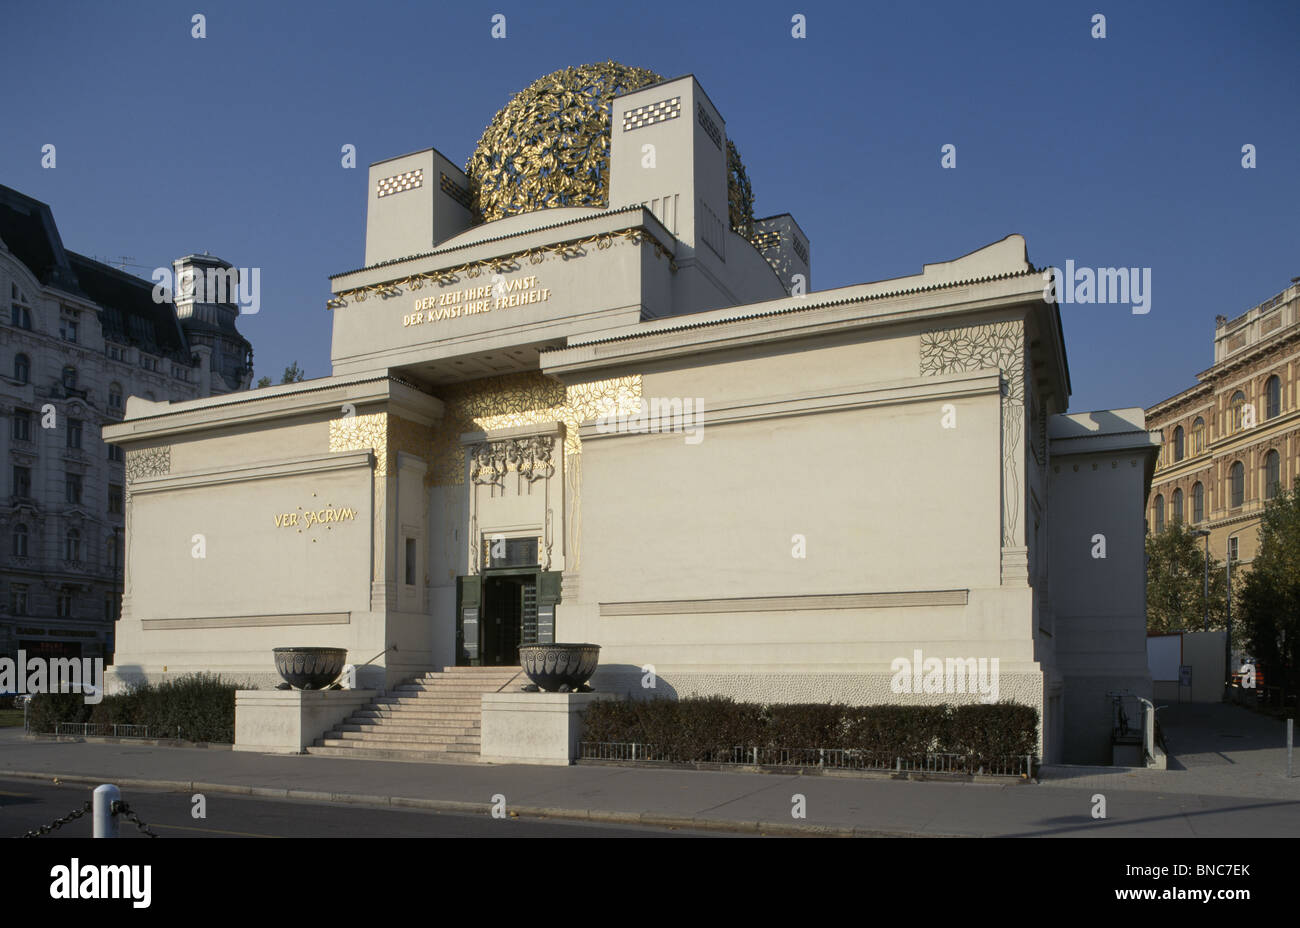 Secession (Sezession) Building Vienna, by J.M. Olbrich built 1897-8 as exhibition gallery for artists of the Vienna - Stock Image